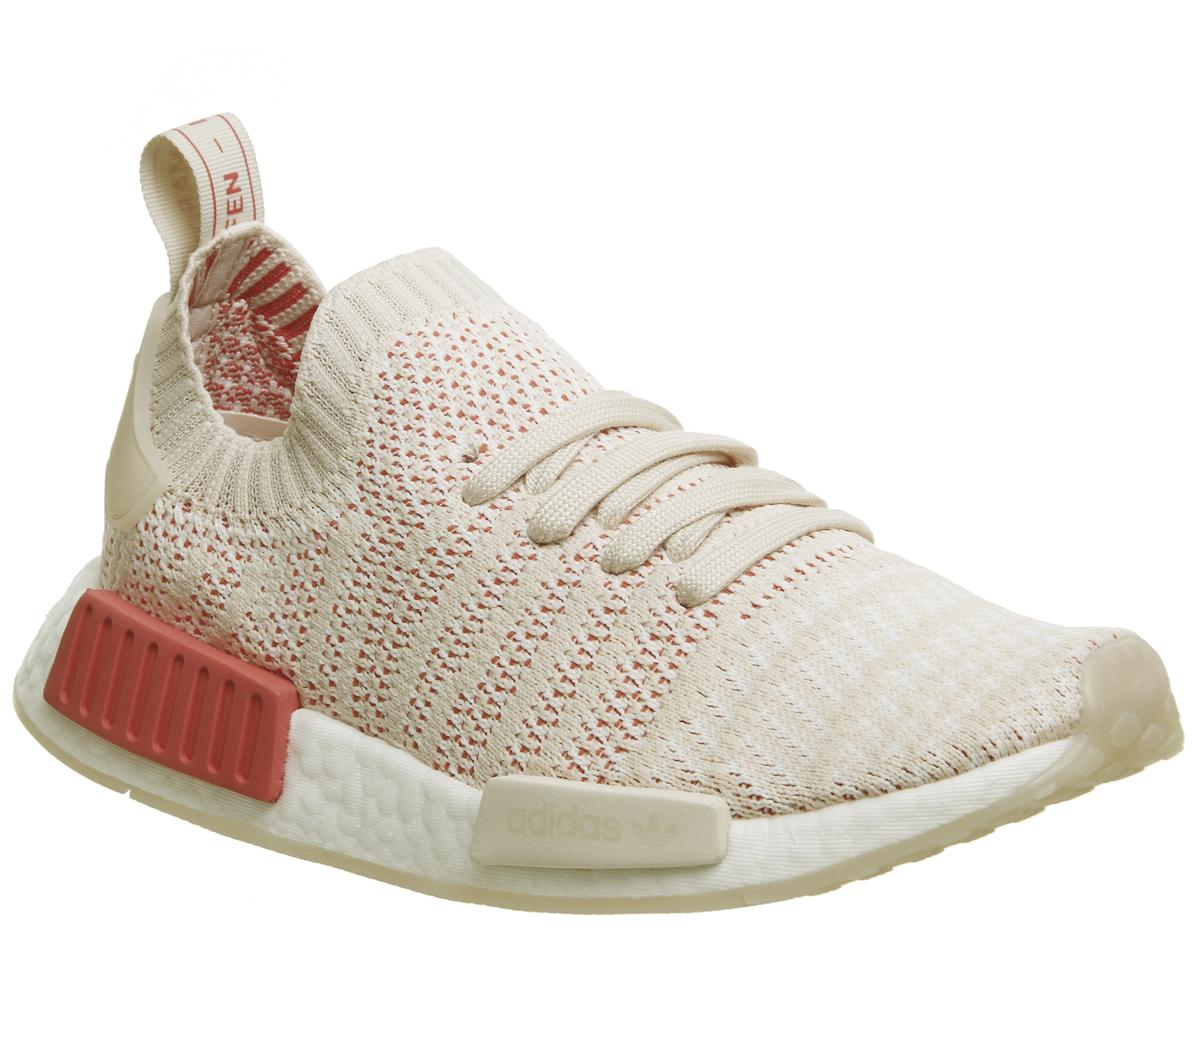 Nmd R1 Prime Knit Trainers